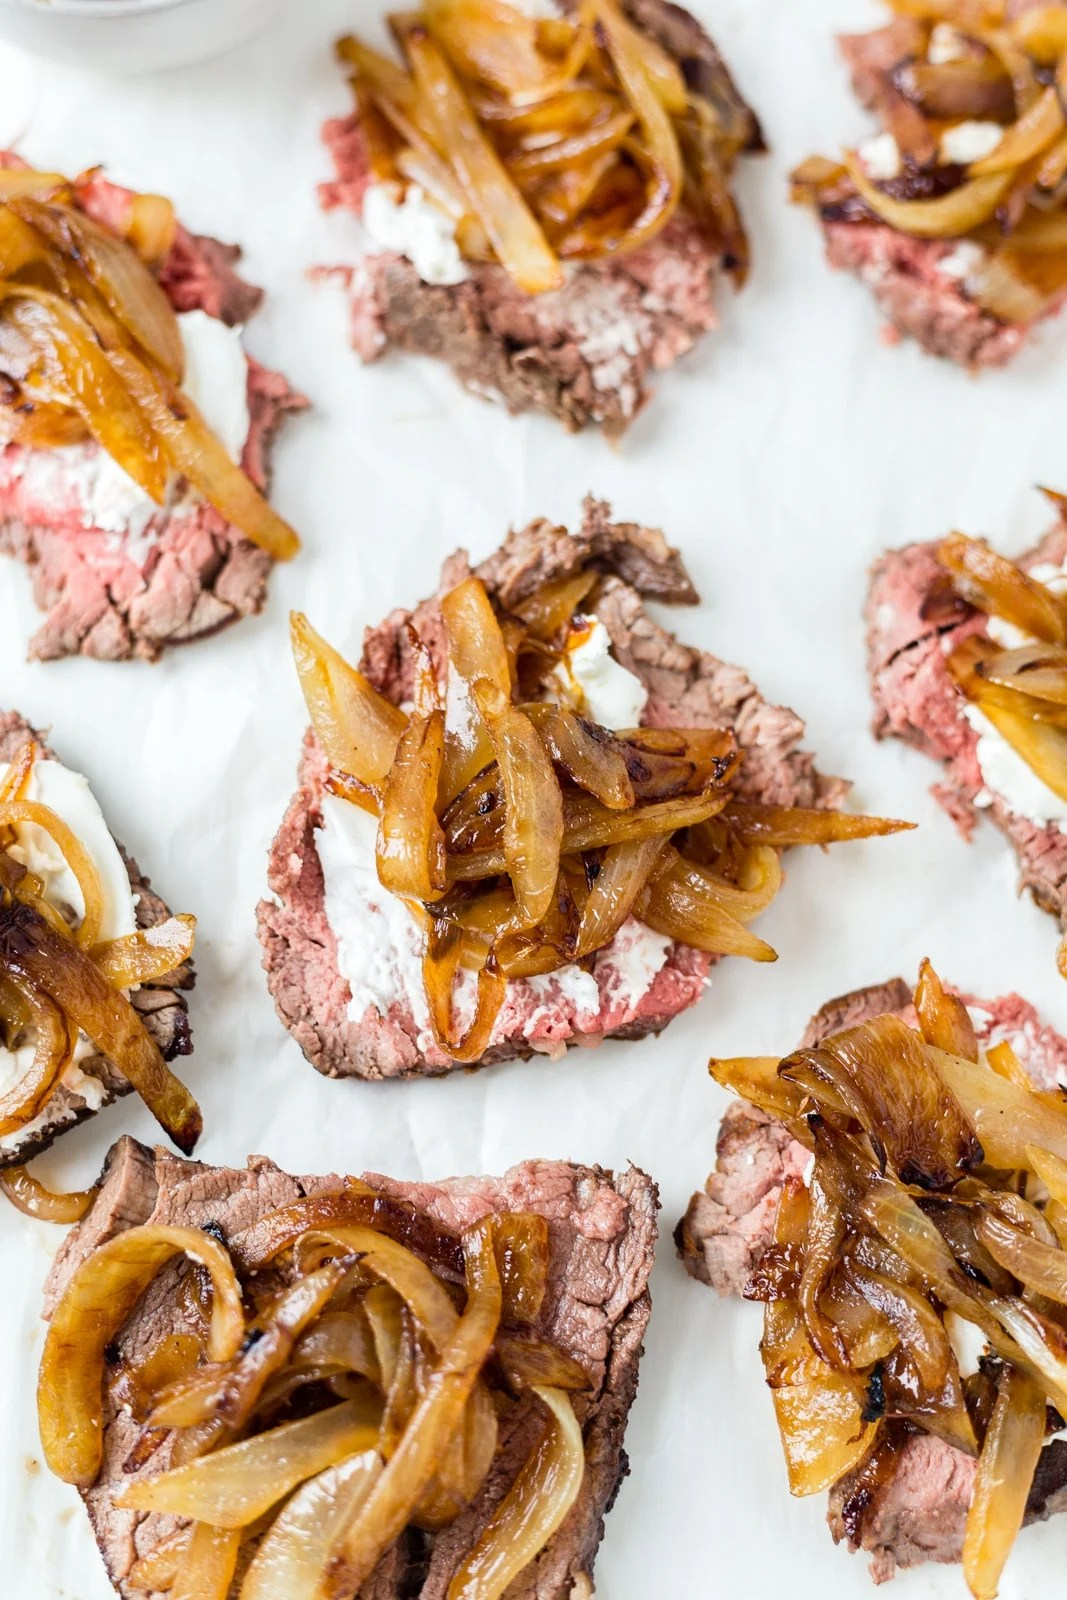 8 pieces of thinly sliced beef tenderloin on a cutting board topped with goat cheese and caramelized onion